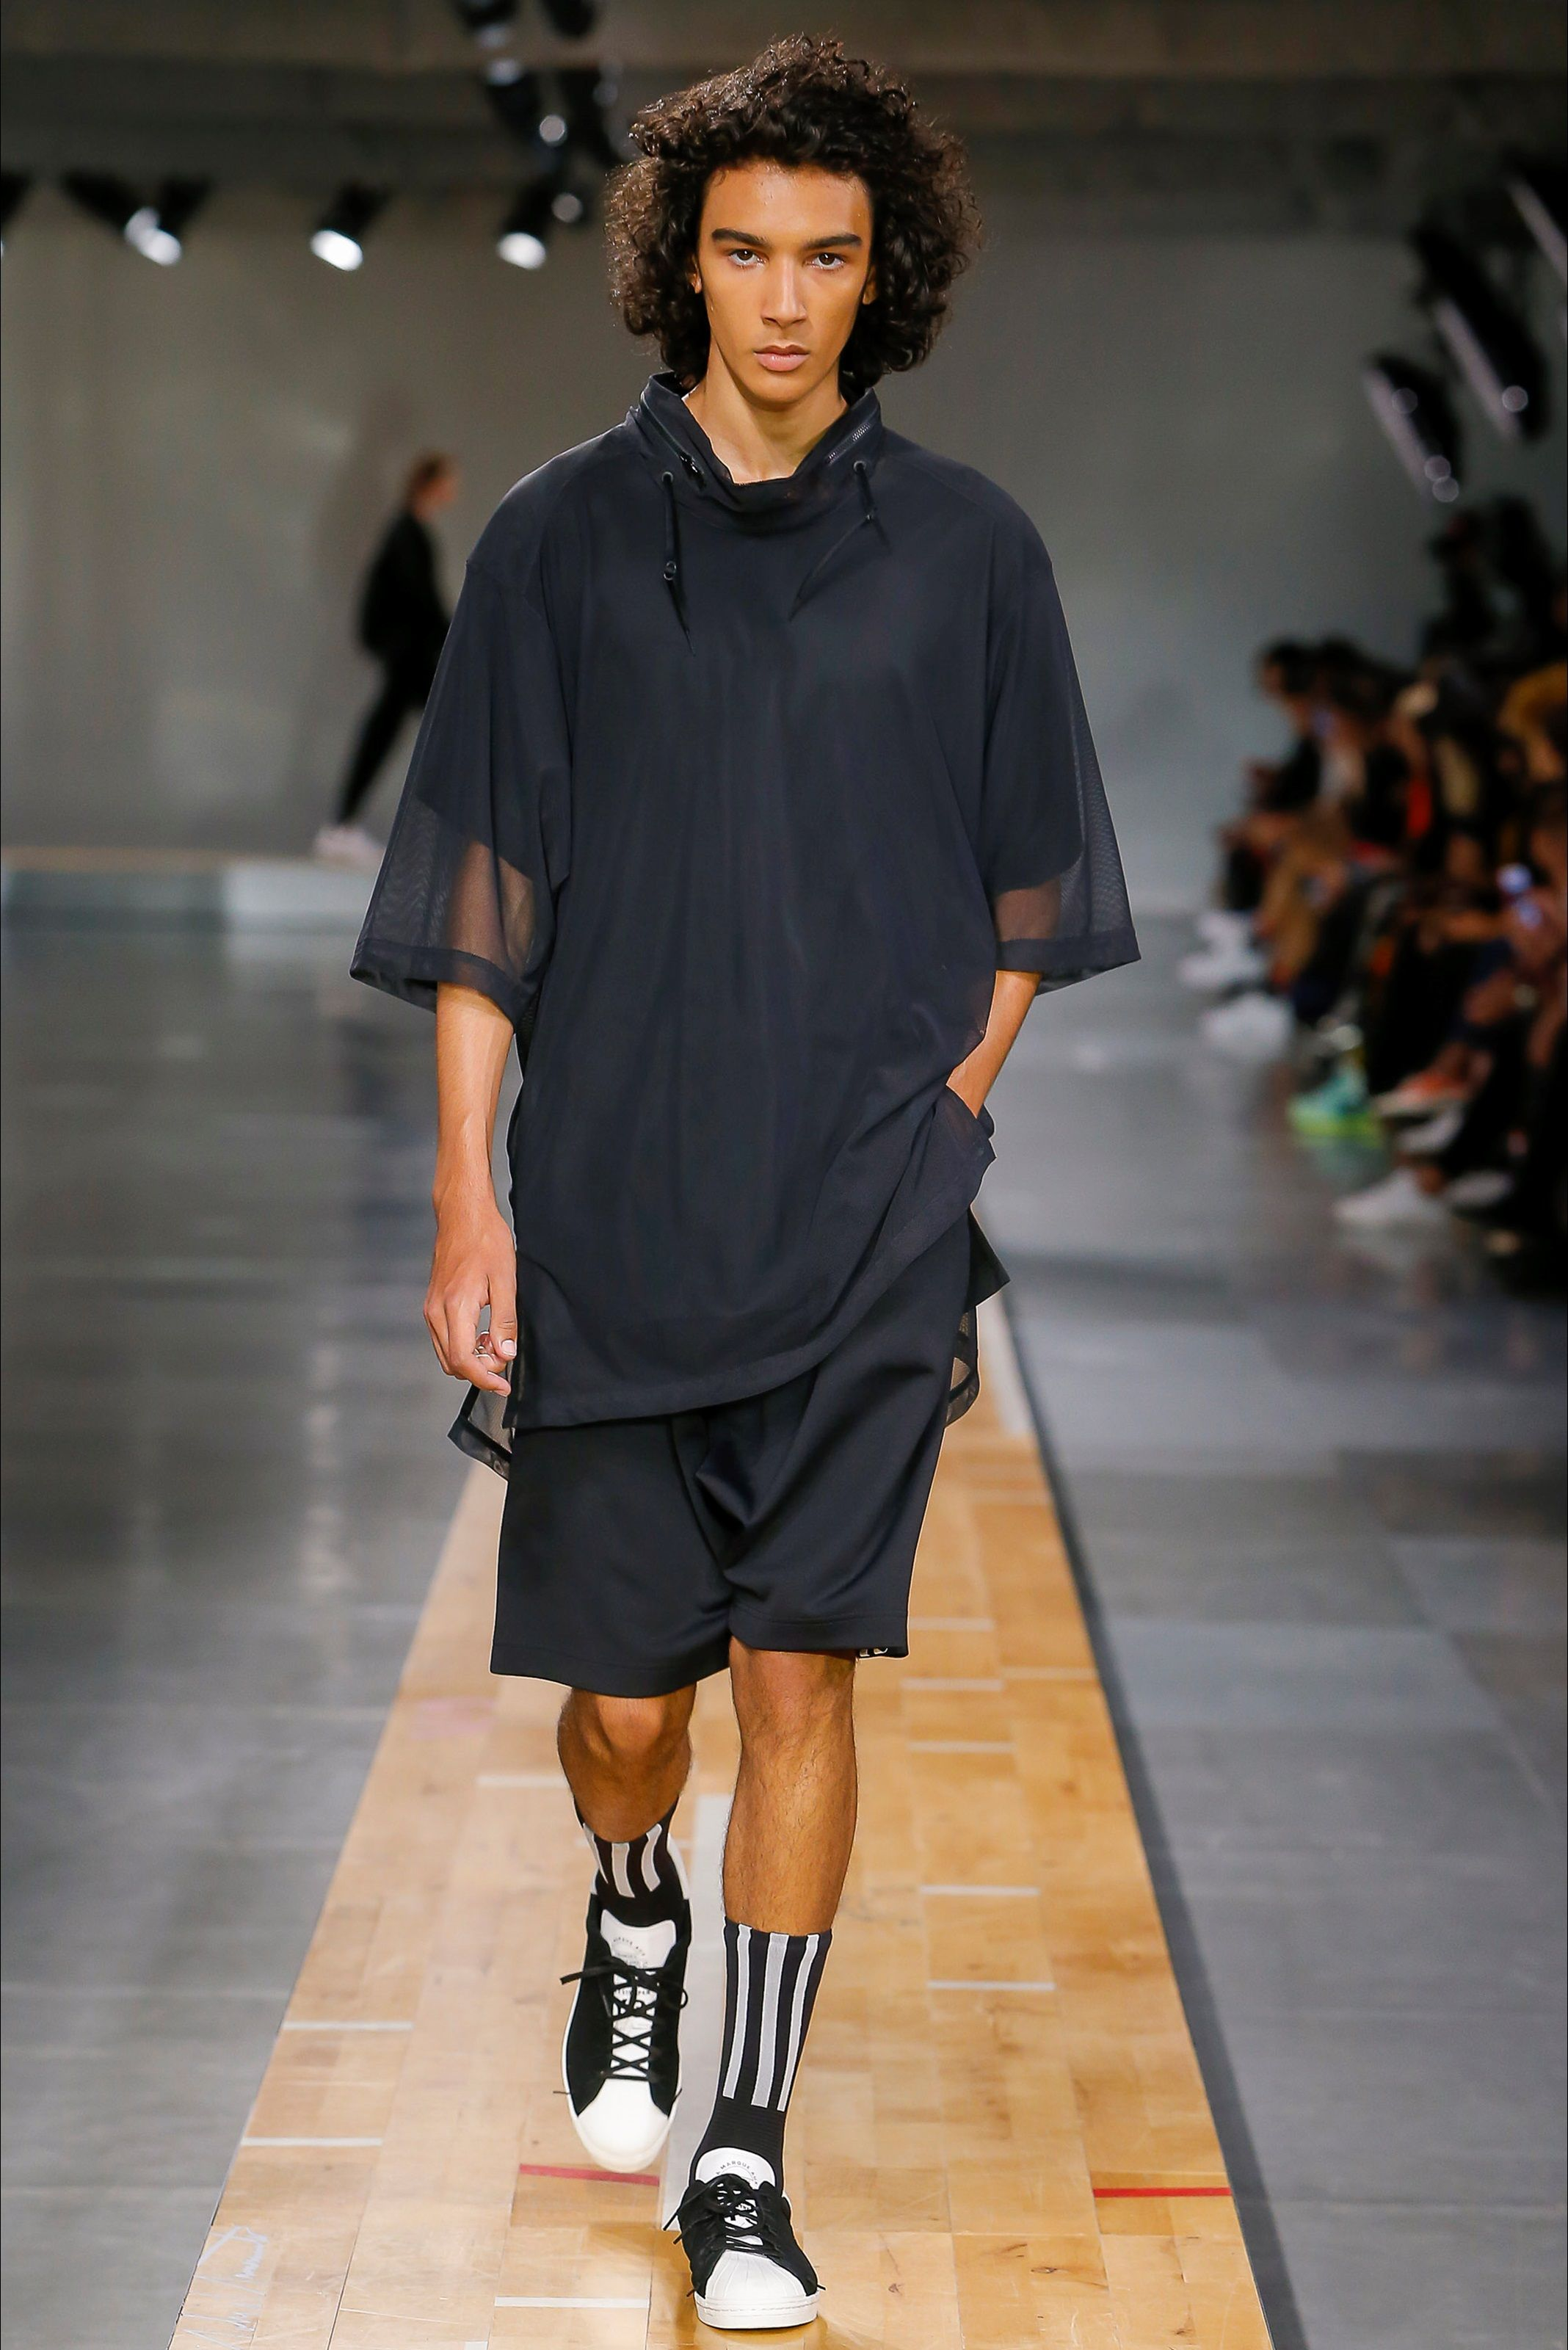 the latest 9c69c 5ea9d ... Yohji Yamamoto and adidas. Sfilata Moda Uomo Y-3 Parigi - Primavera  Estate 2018 - Vogue